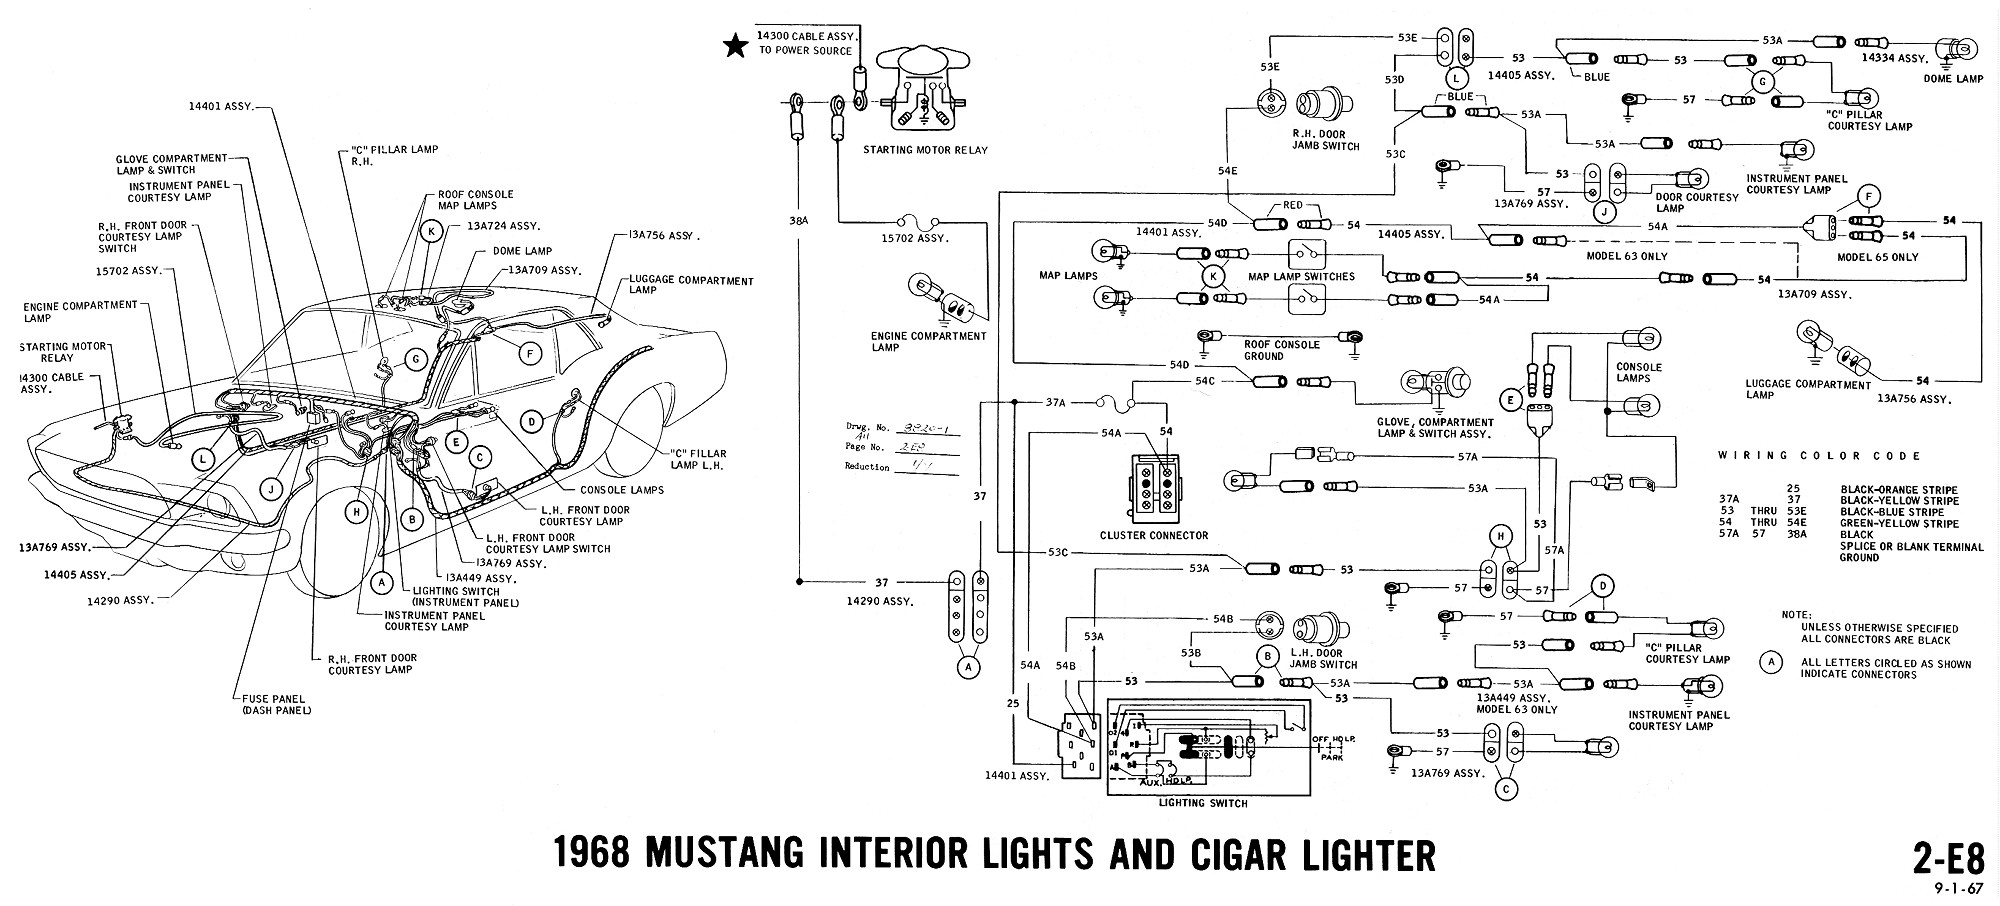 1968 mustang wiring diagram interior lights cigar lighter 1968 mustang wiring diagram 1966 mustang wiring diagrams \u2022 free 1966 mustang heater wiring diagram at bayanpartner.co